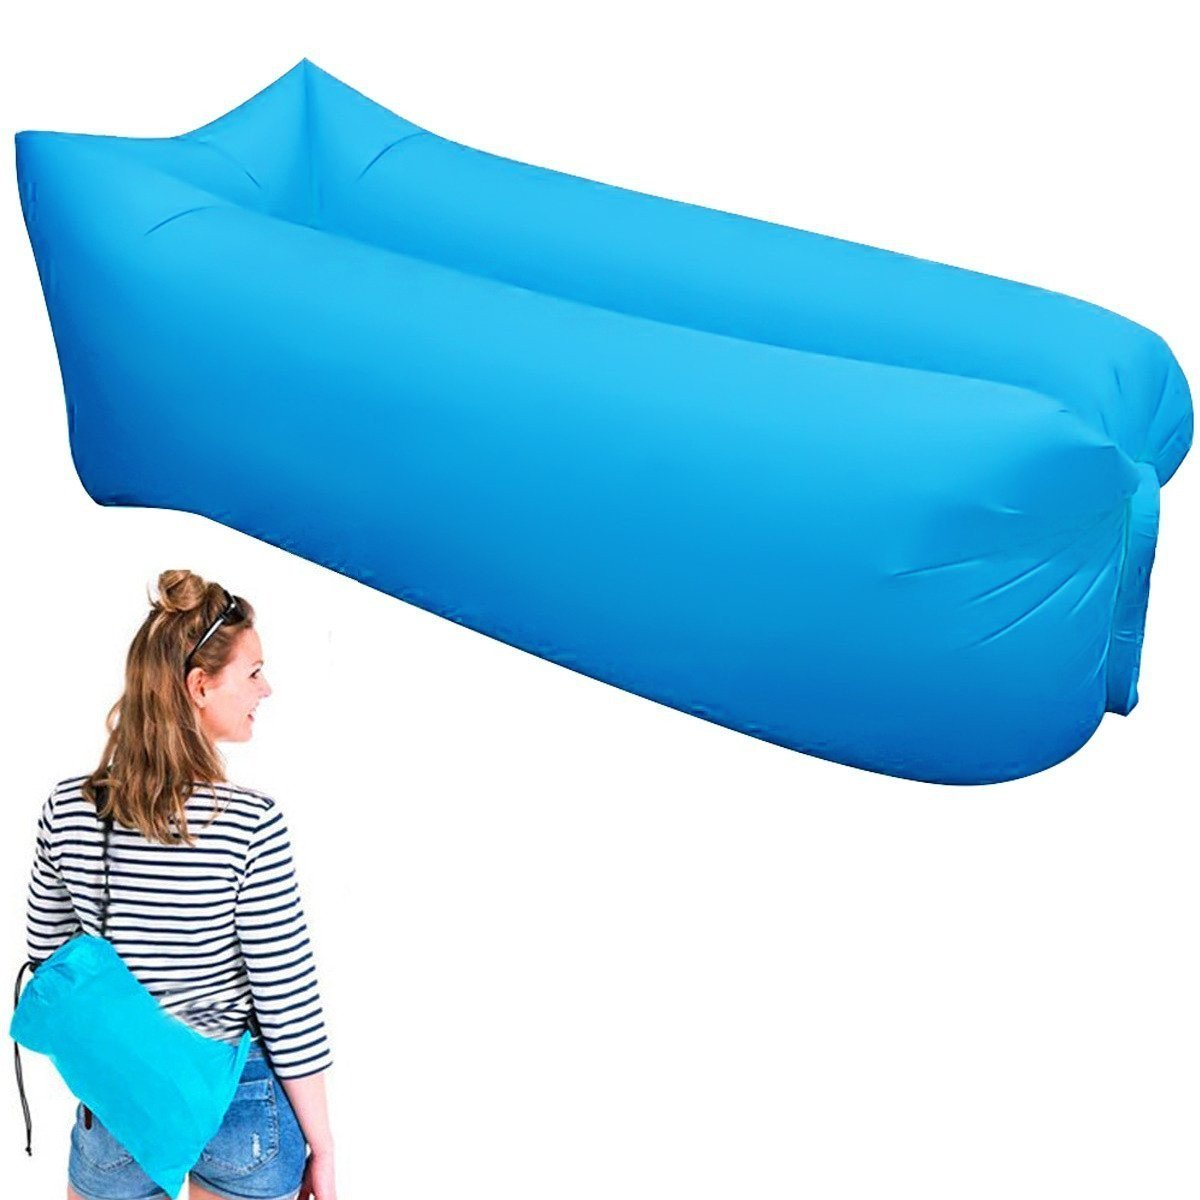 Square fast inflatable lounger air sleep lazy bag camping sofa portable beach outdoor hangout bag laybag hamac gonflable plage ...